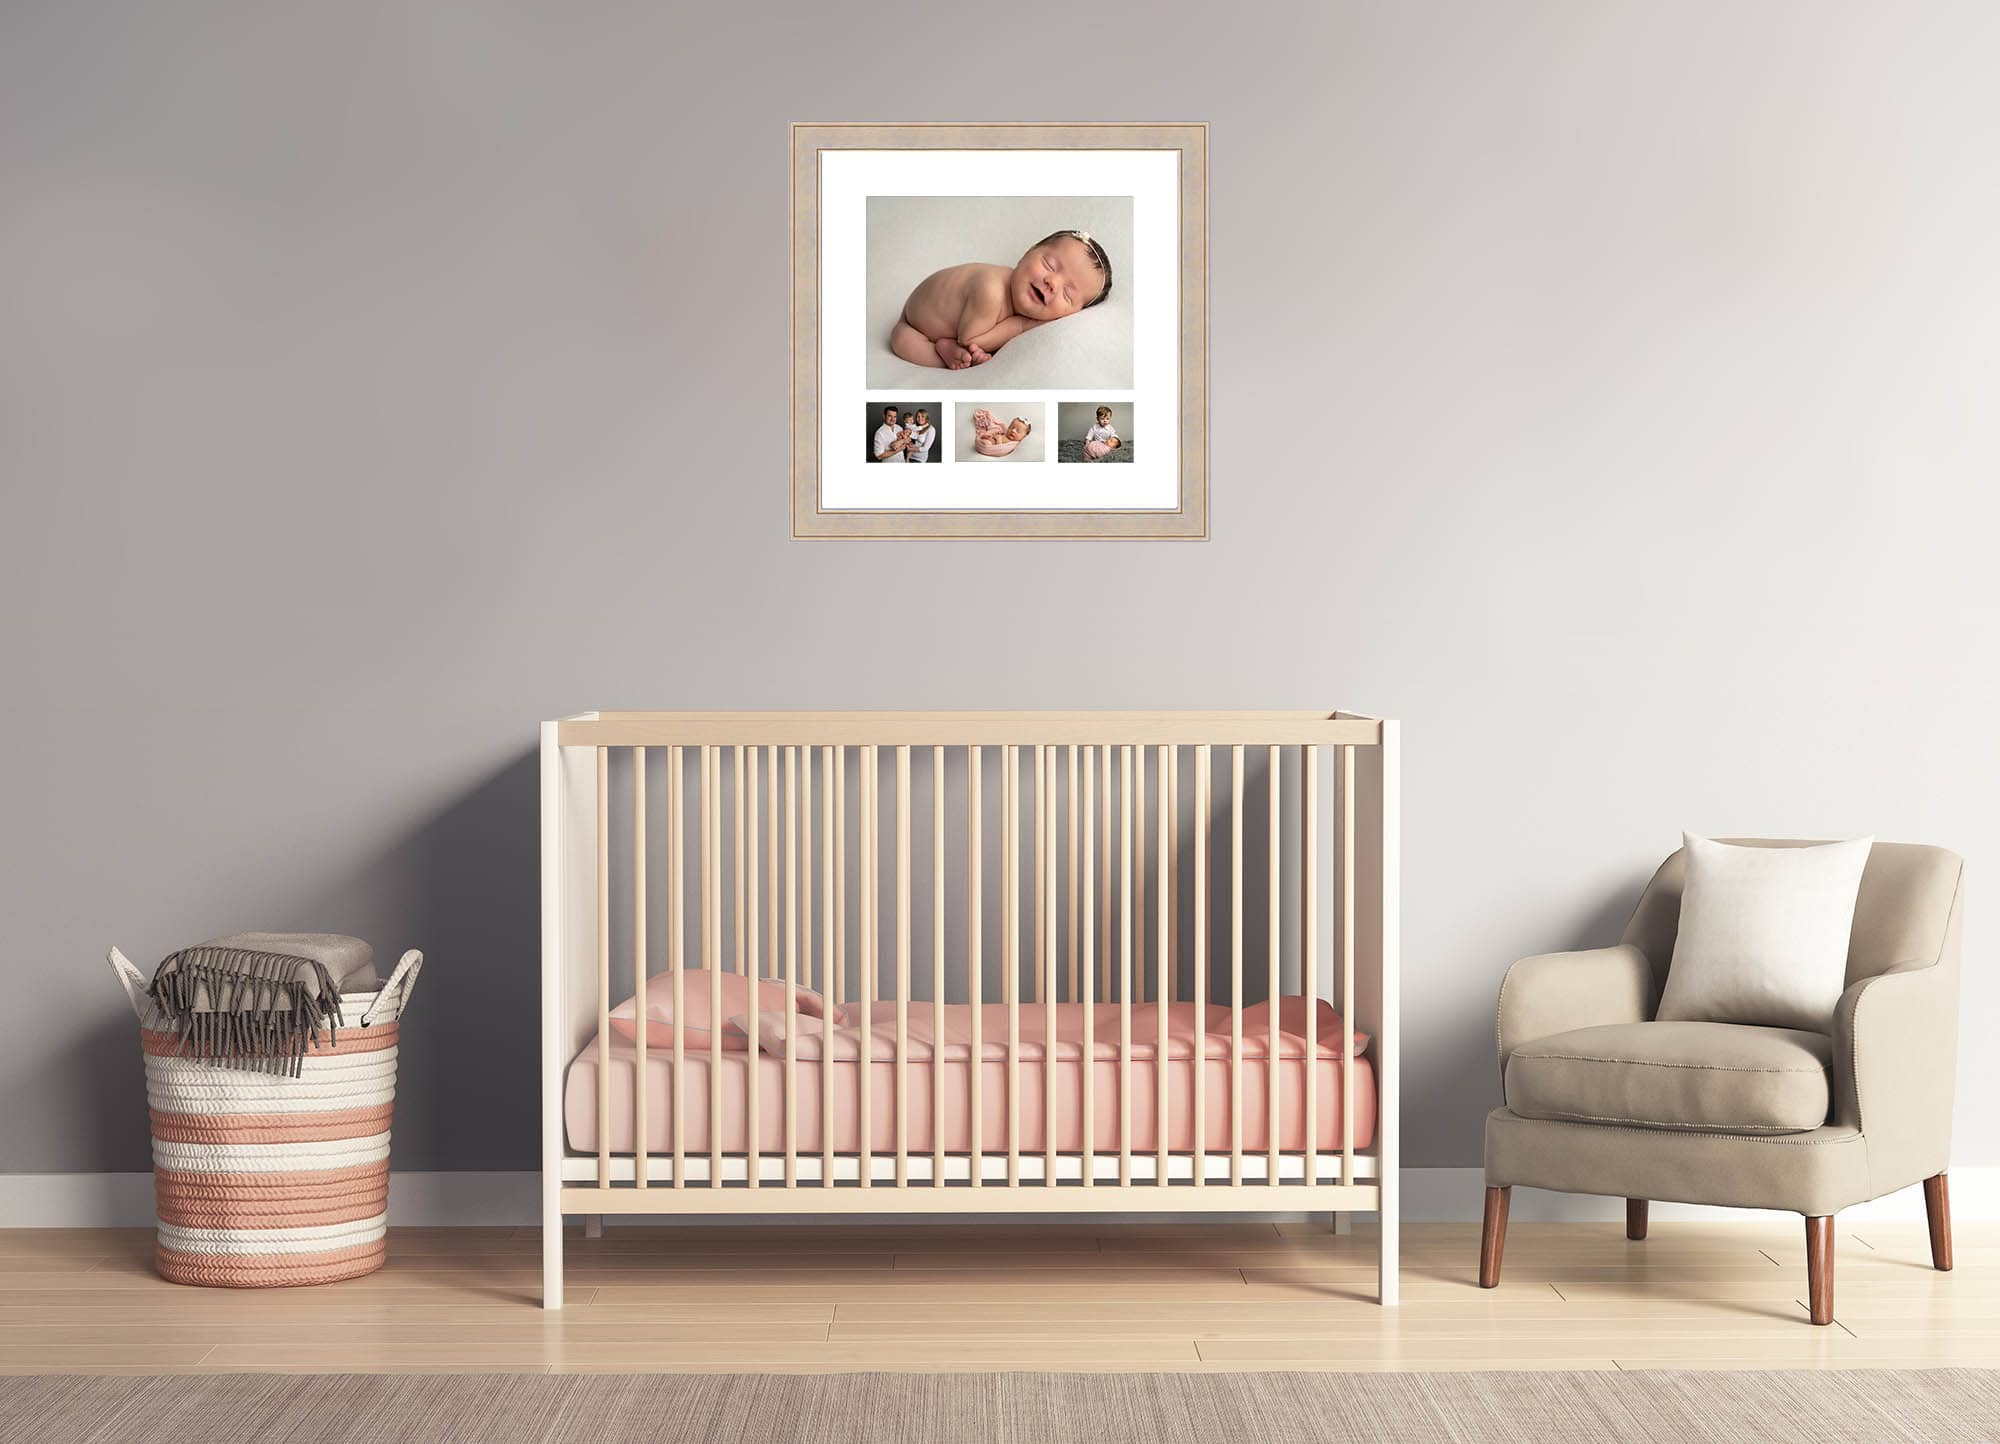 nursery scene with cot, basket and chair in front of the image. Multi image frame above the cot. Nurser is kitted out on cream, pink and grey tones. Image displaying products available after newborn photography session in Glasgow